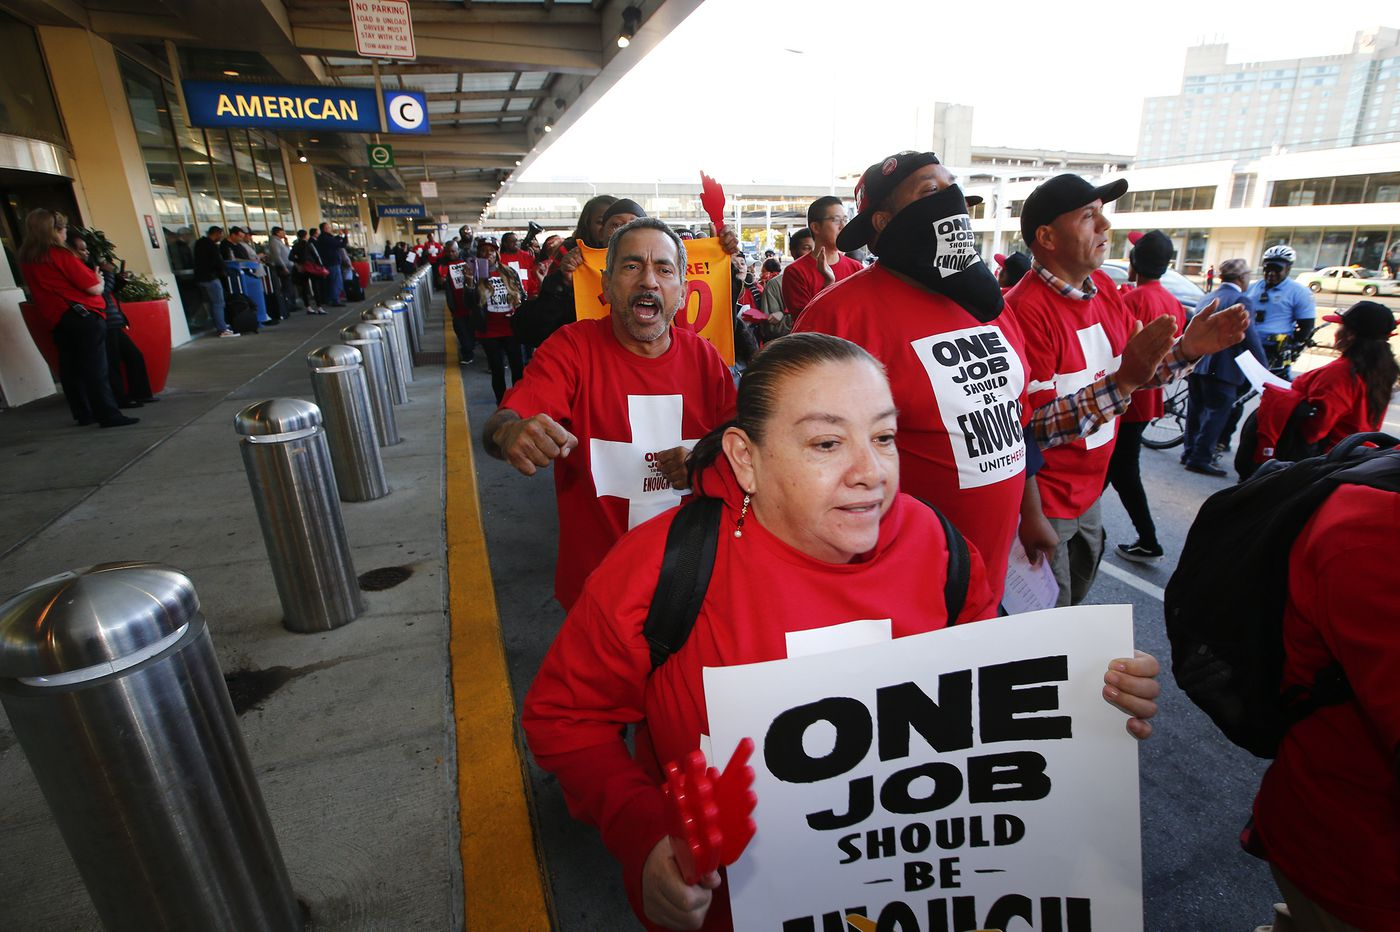 Why these workers are bypassing employers and protesting bigger targets: American Airlines and Ross